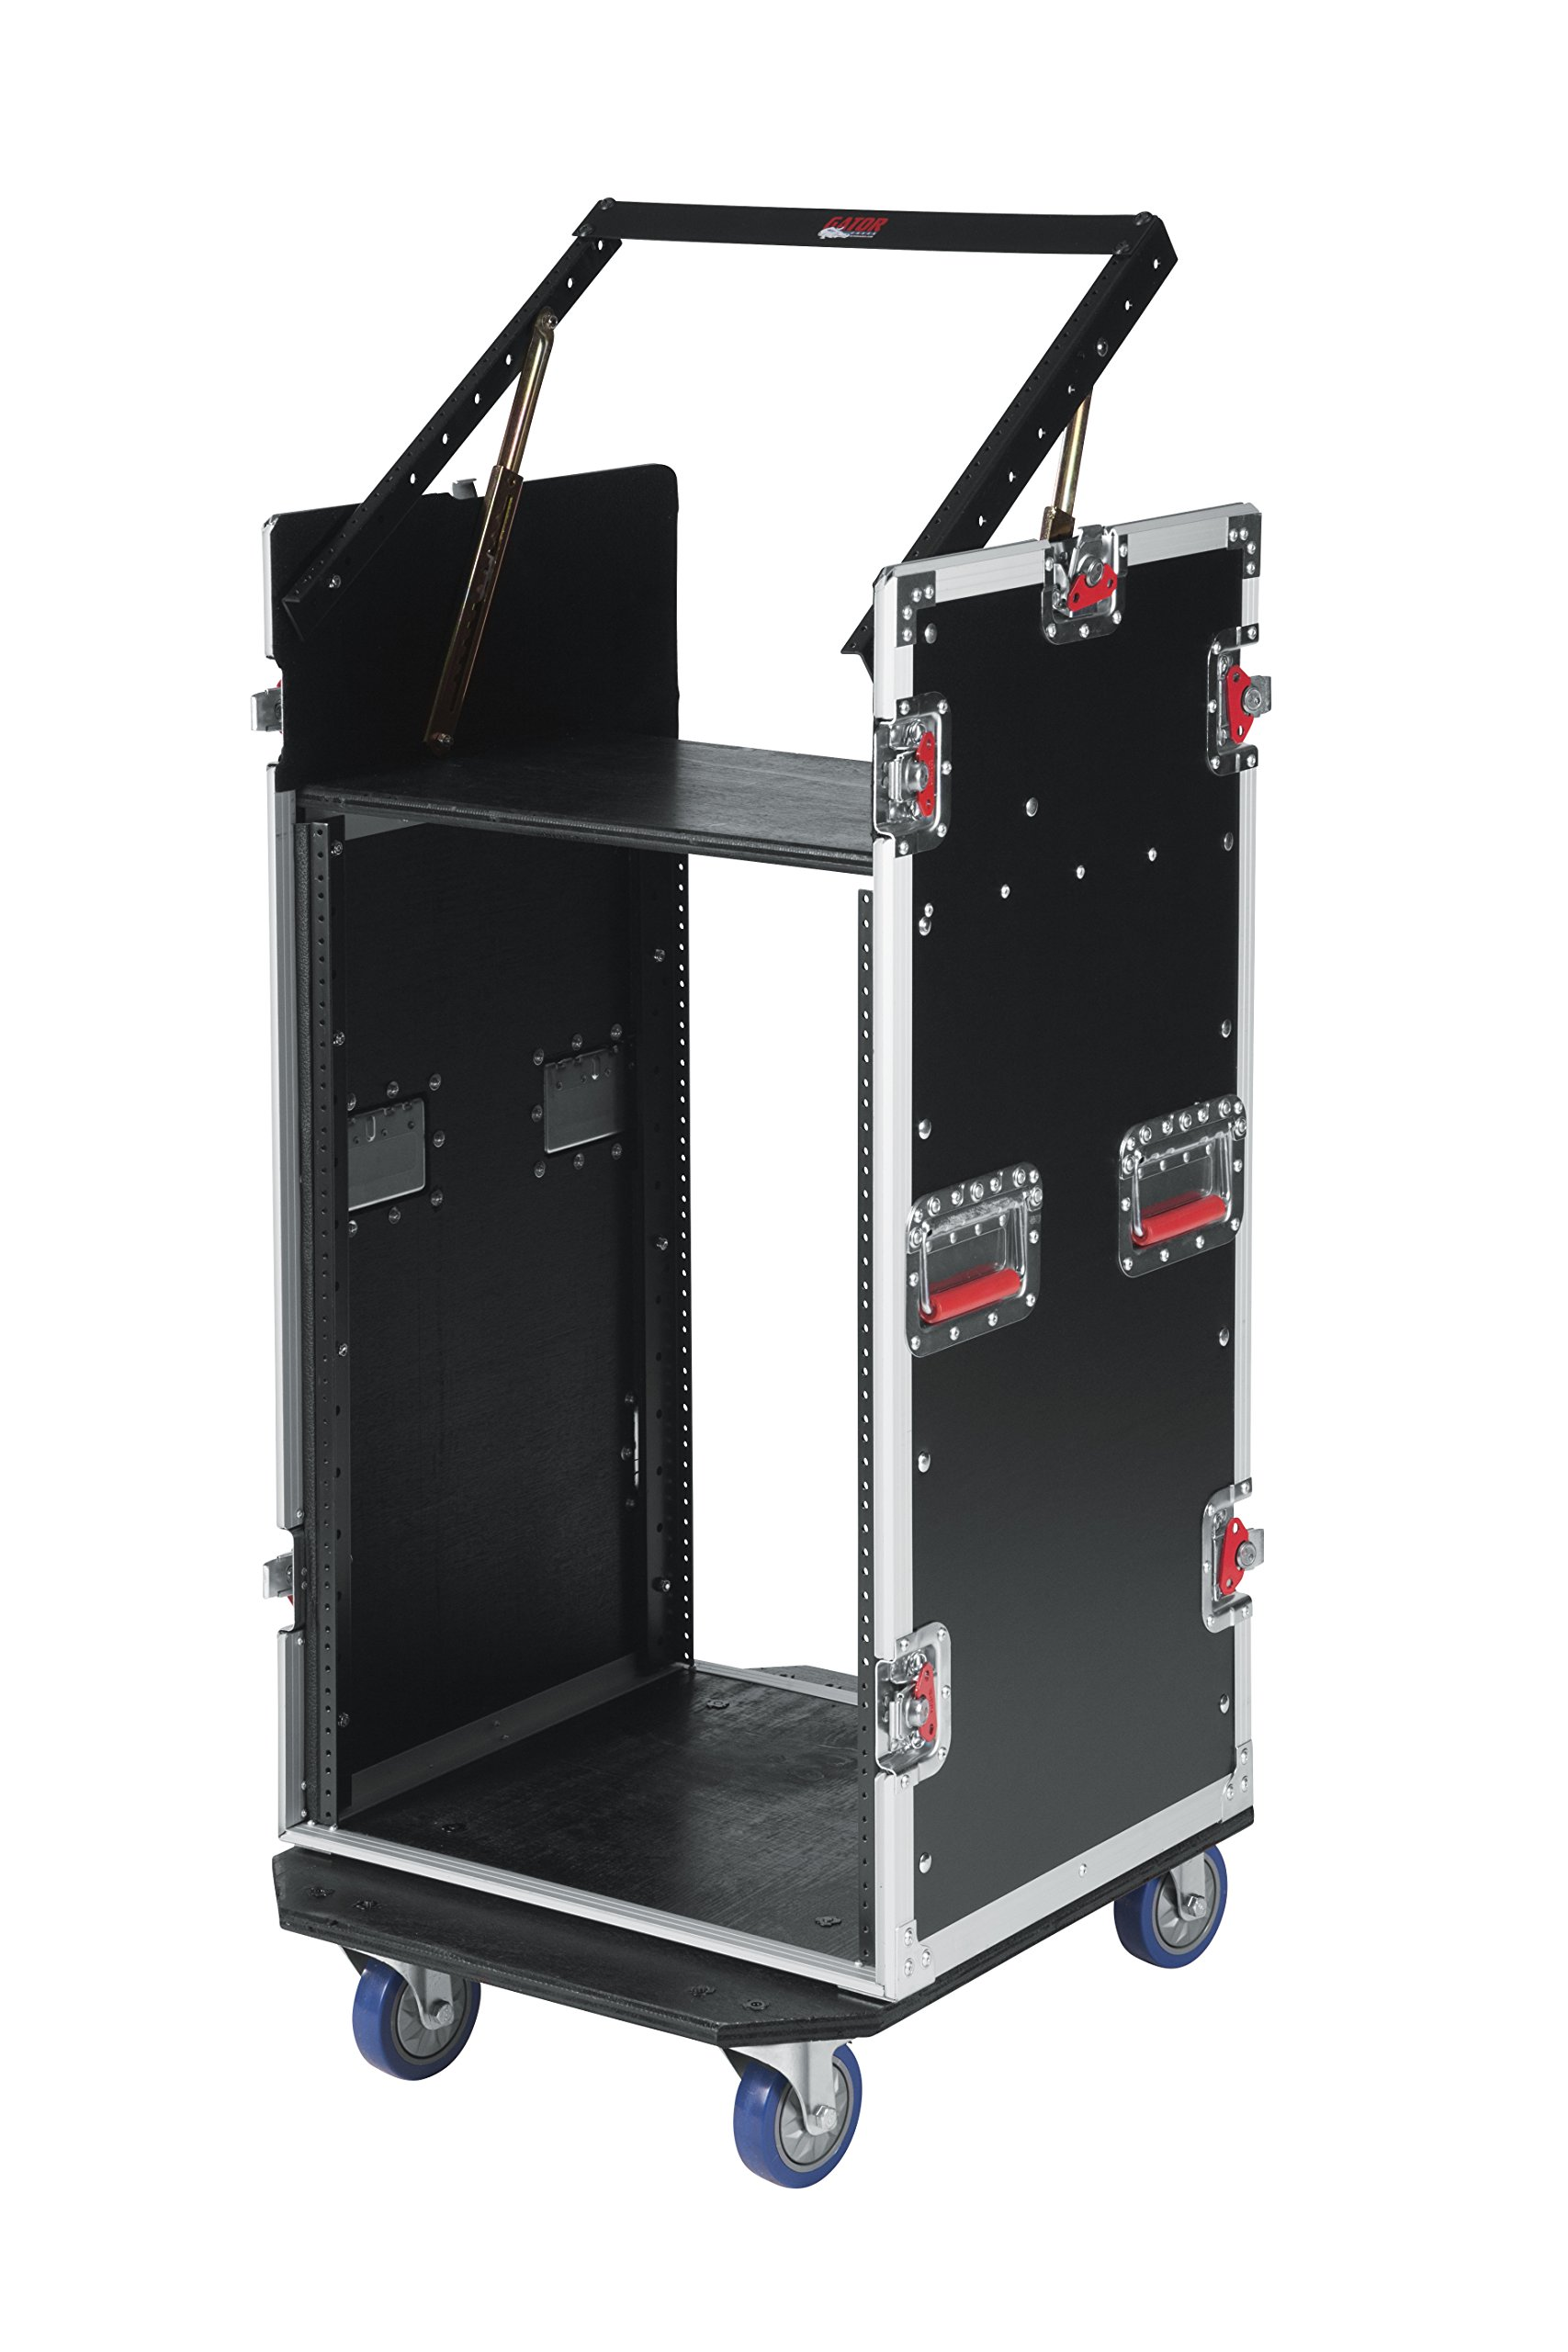 Gator Cases G-TOUR Audio Road Rack with Heavy-Duty Wheels and Tour Grade Hardware; 10U Pop Up Rack Top, and 16U Lower Rack (G-TOUR 10X16 PU)